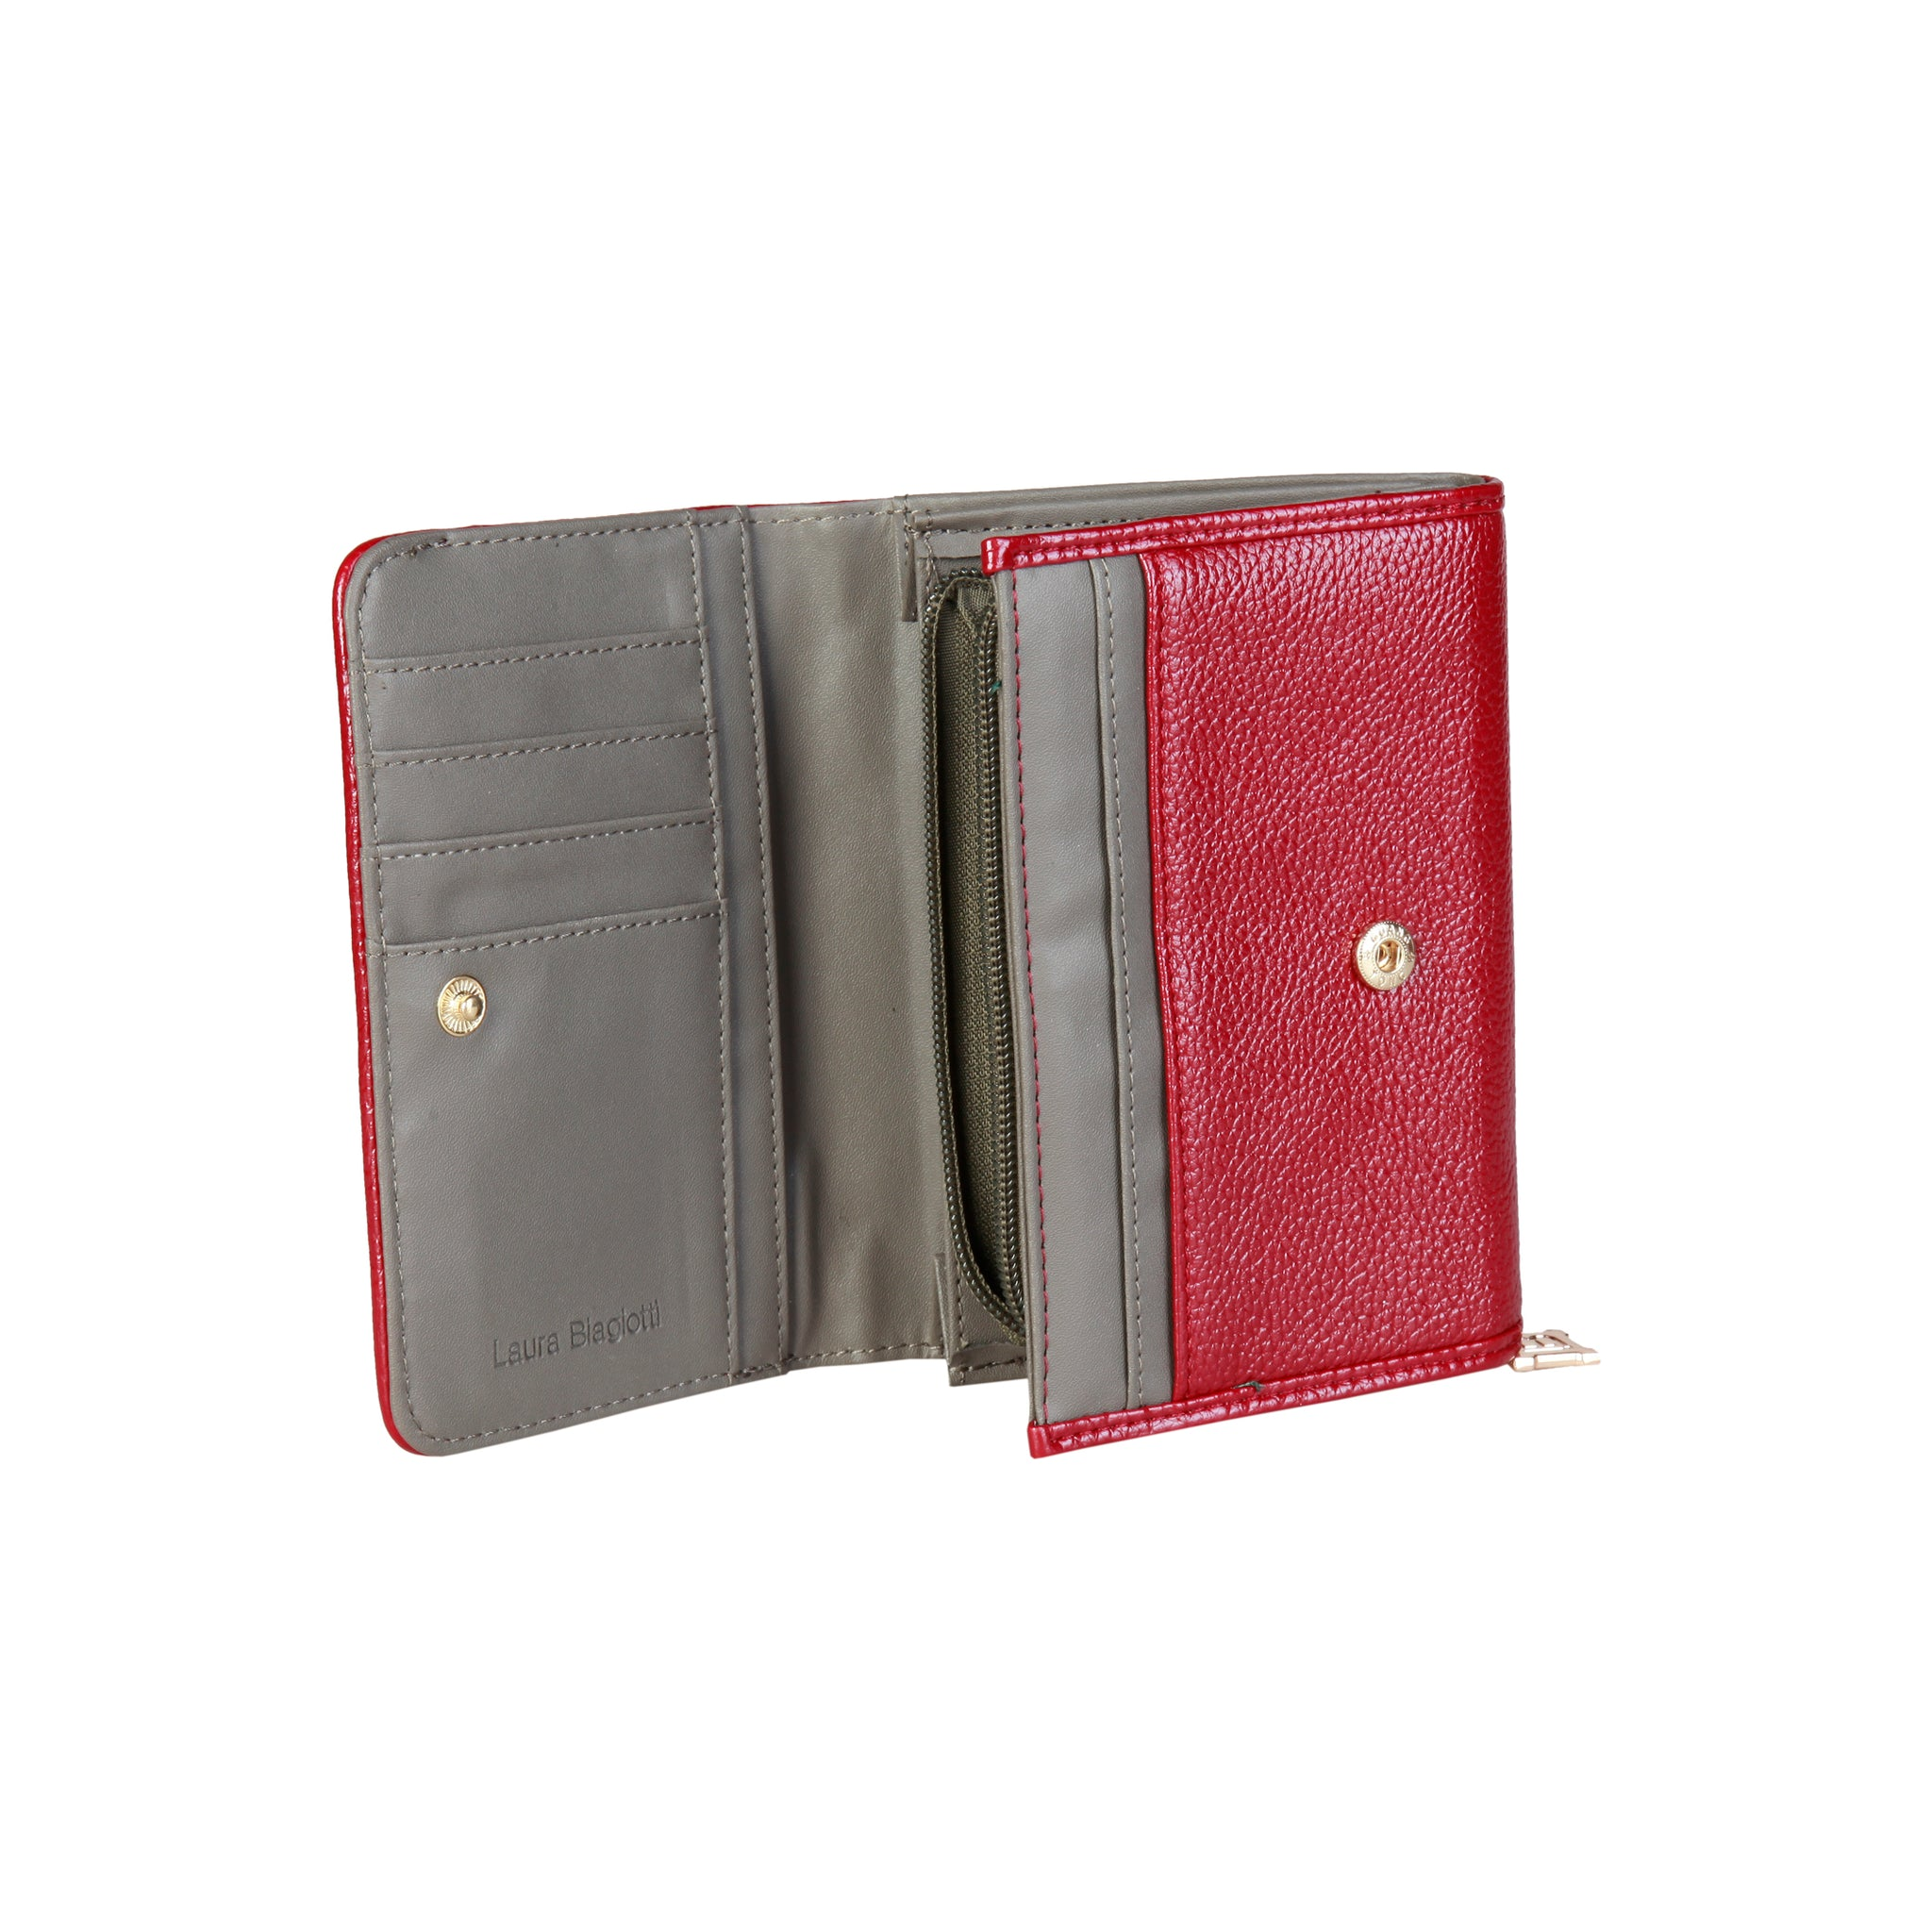 Laura Biagiotti LB17W503-33 Wallets